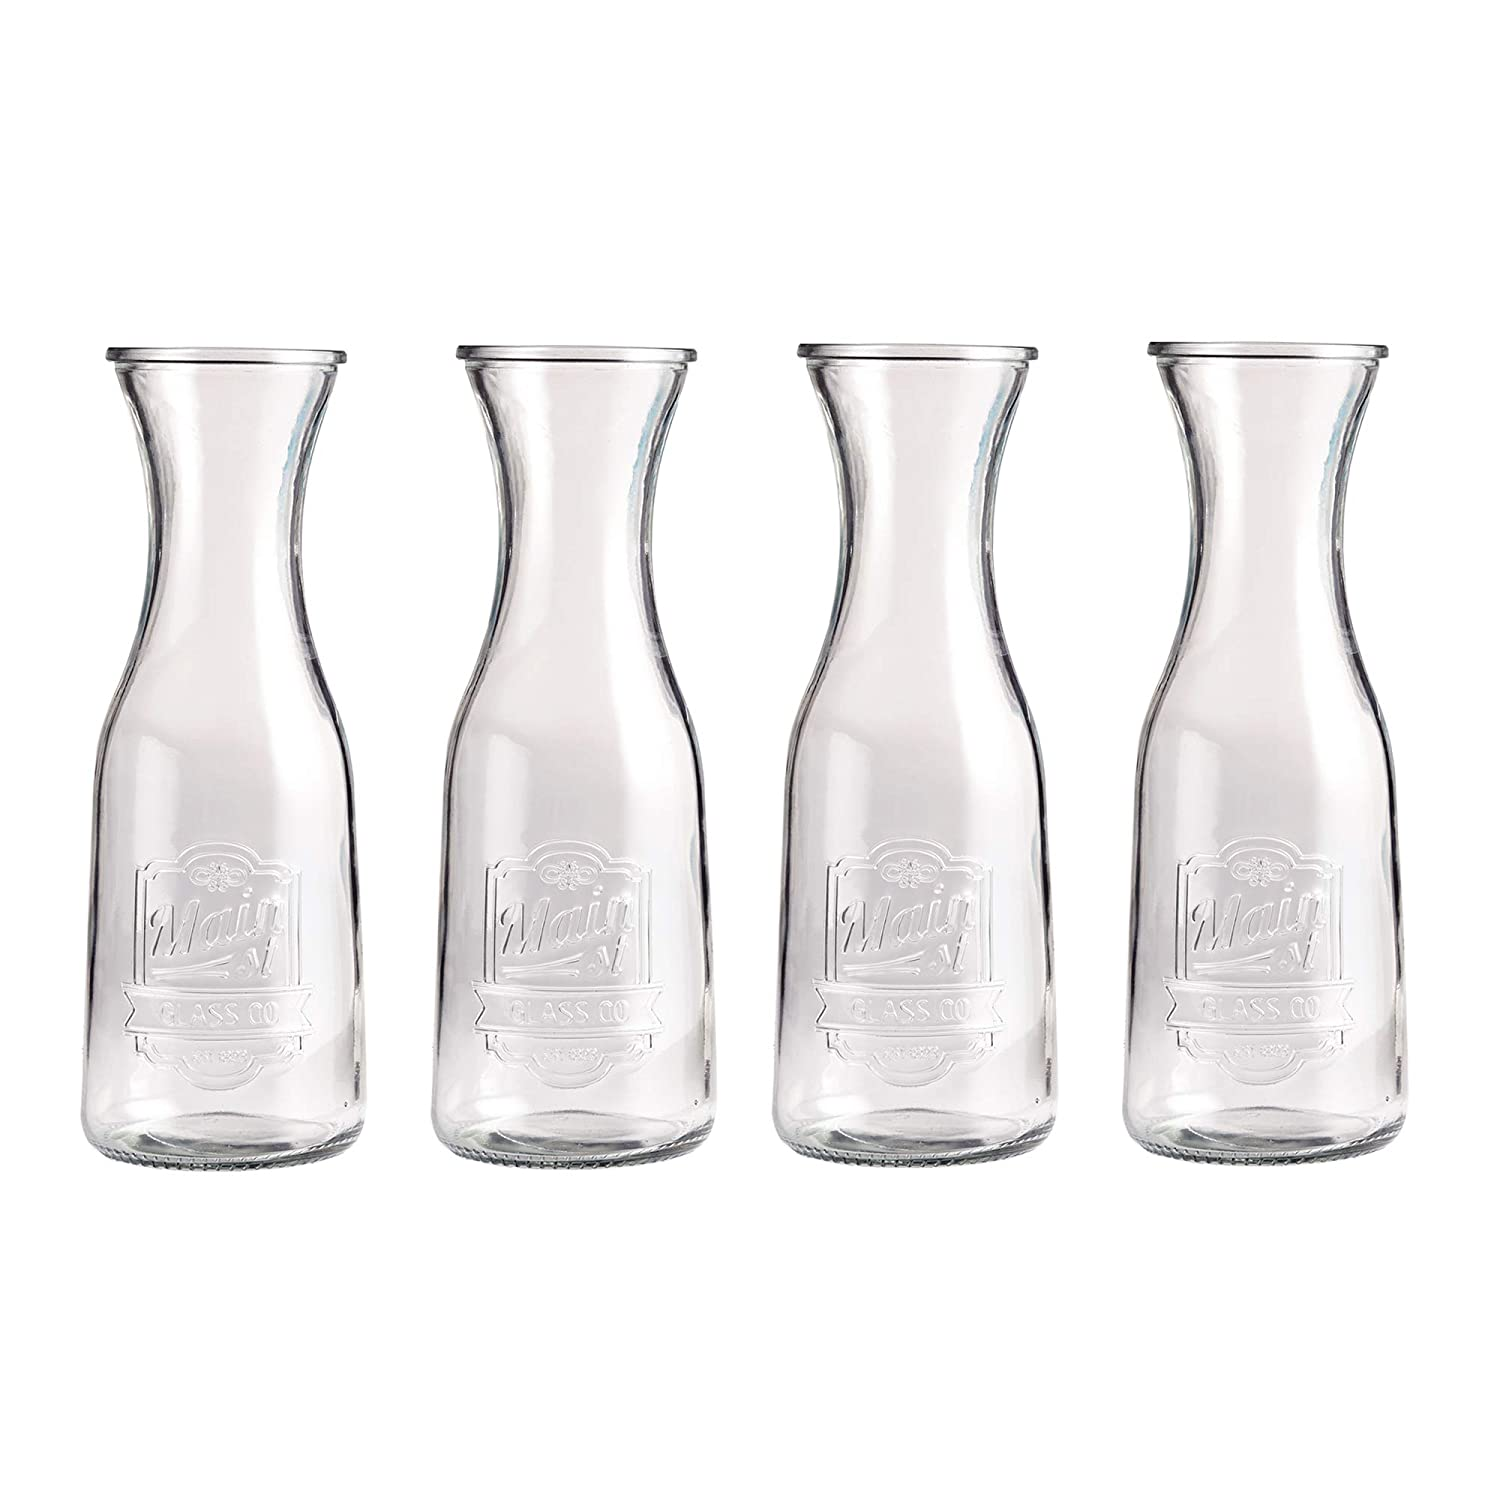 Klikel Main Street Wine & Water Carafe - Restaurant OR Home Pitcher - Set of 2 Milk Bottle - Jug Also for Juice Ice Tea Coffee Lemonade - 1 Liter Klikel Inc